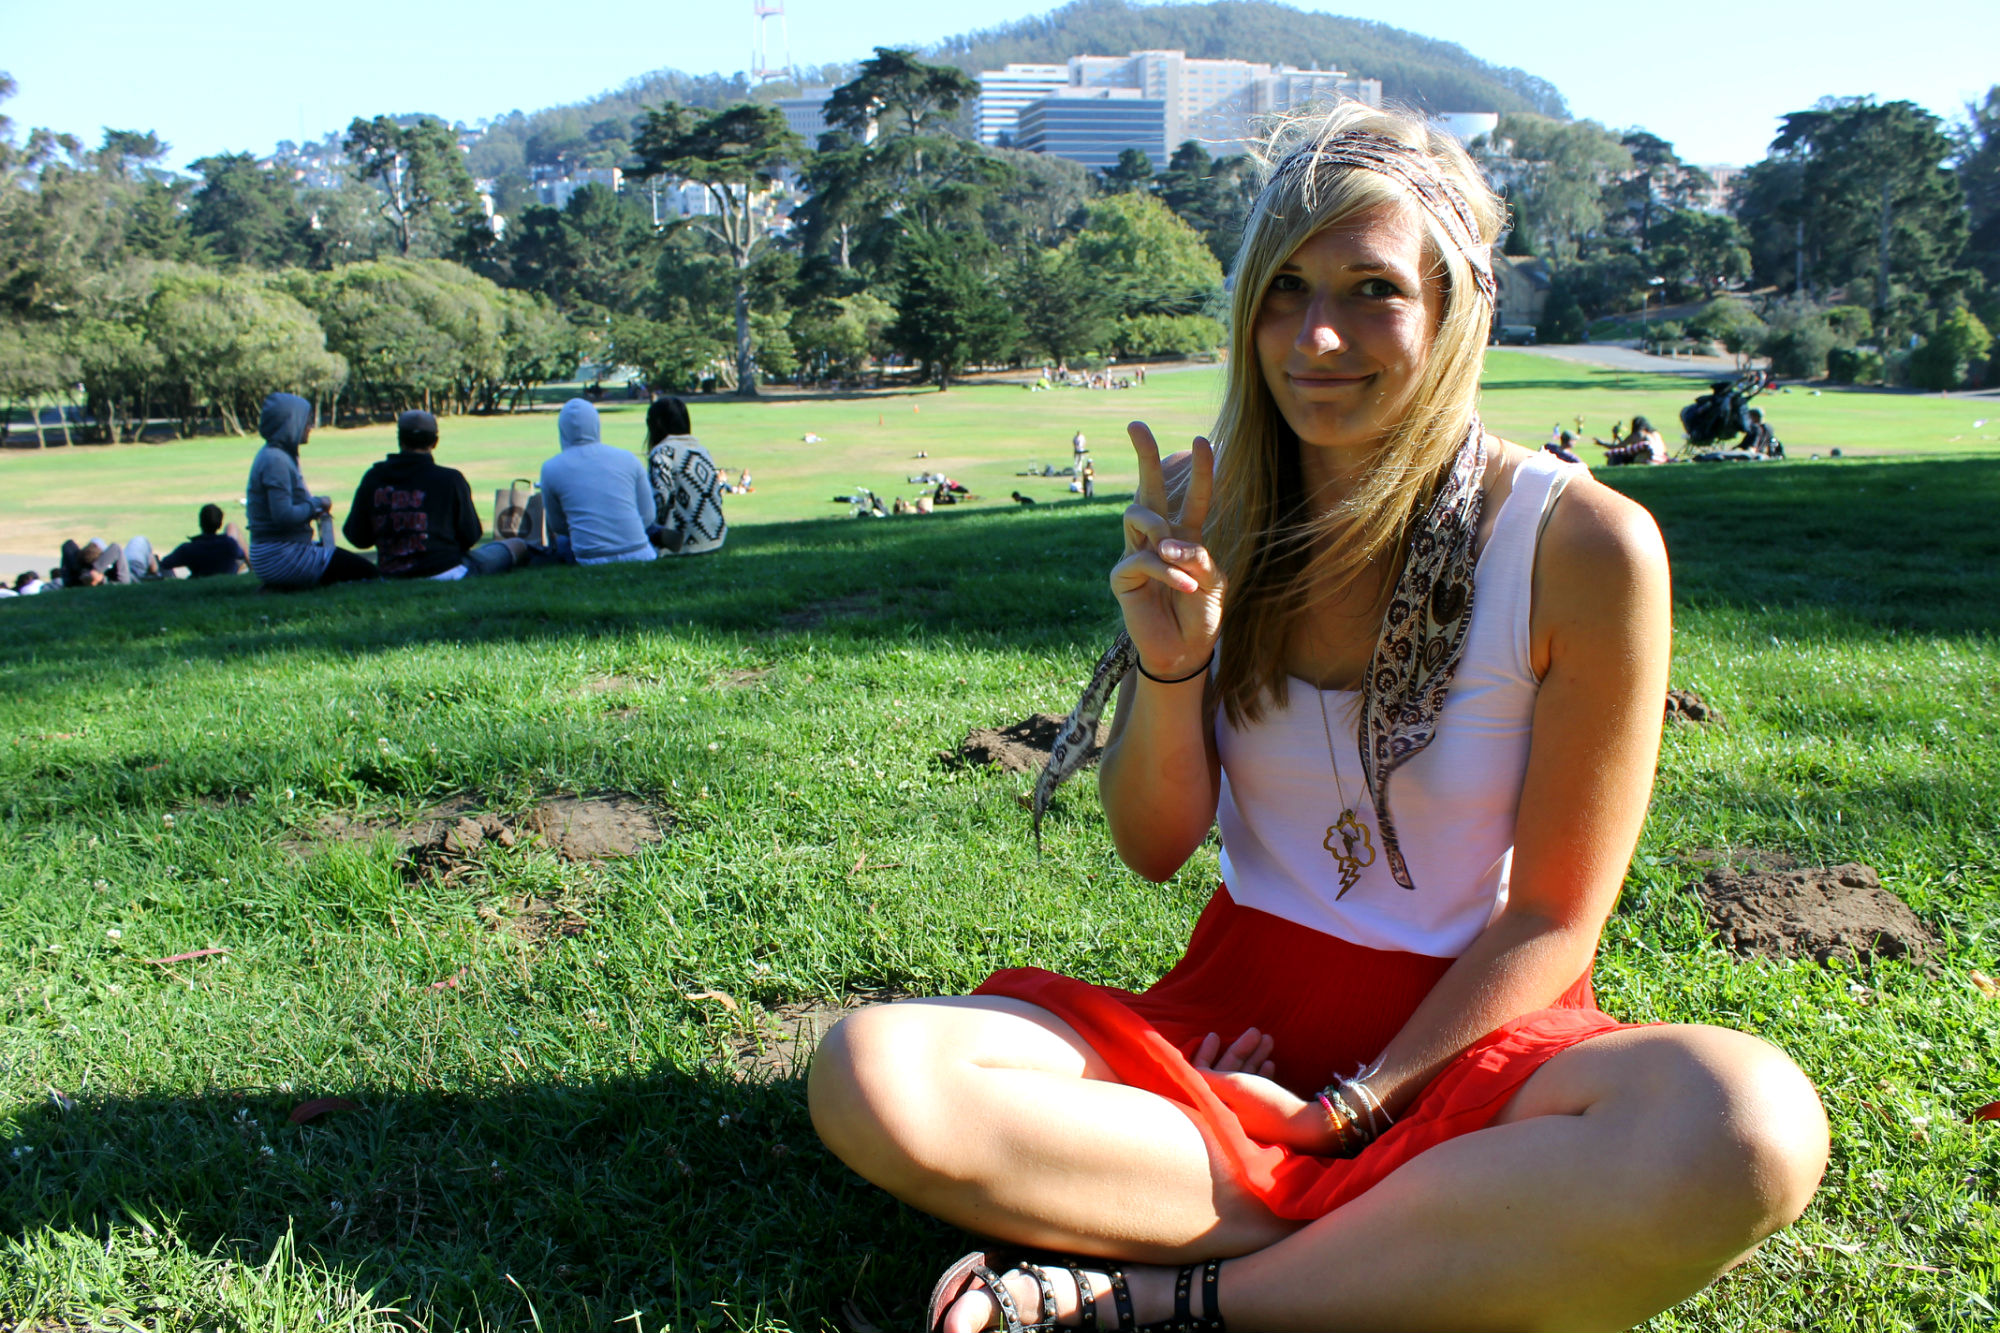 Frankly quite ashamed I'm even doing this pose on San Francisco's Hippie Hill...